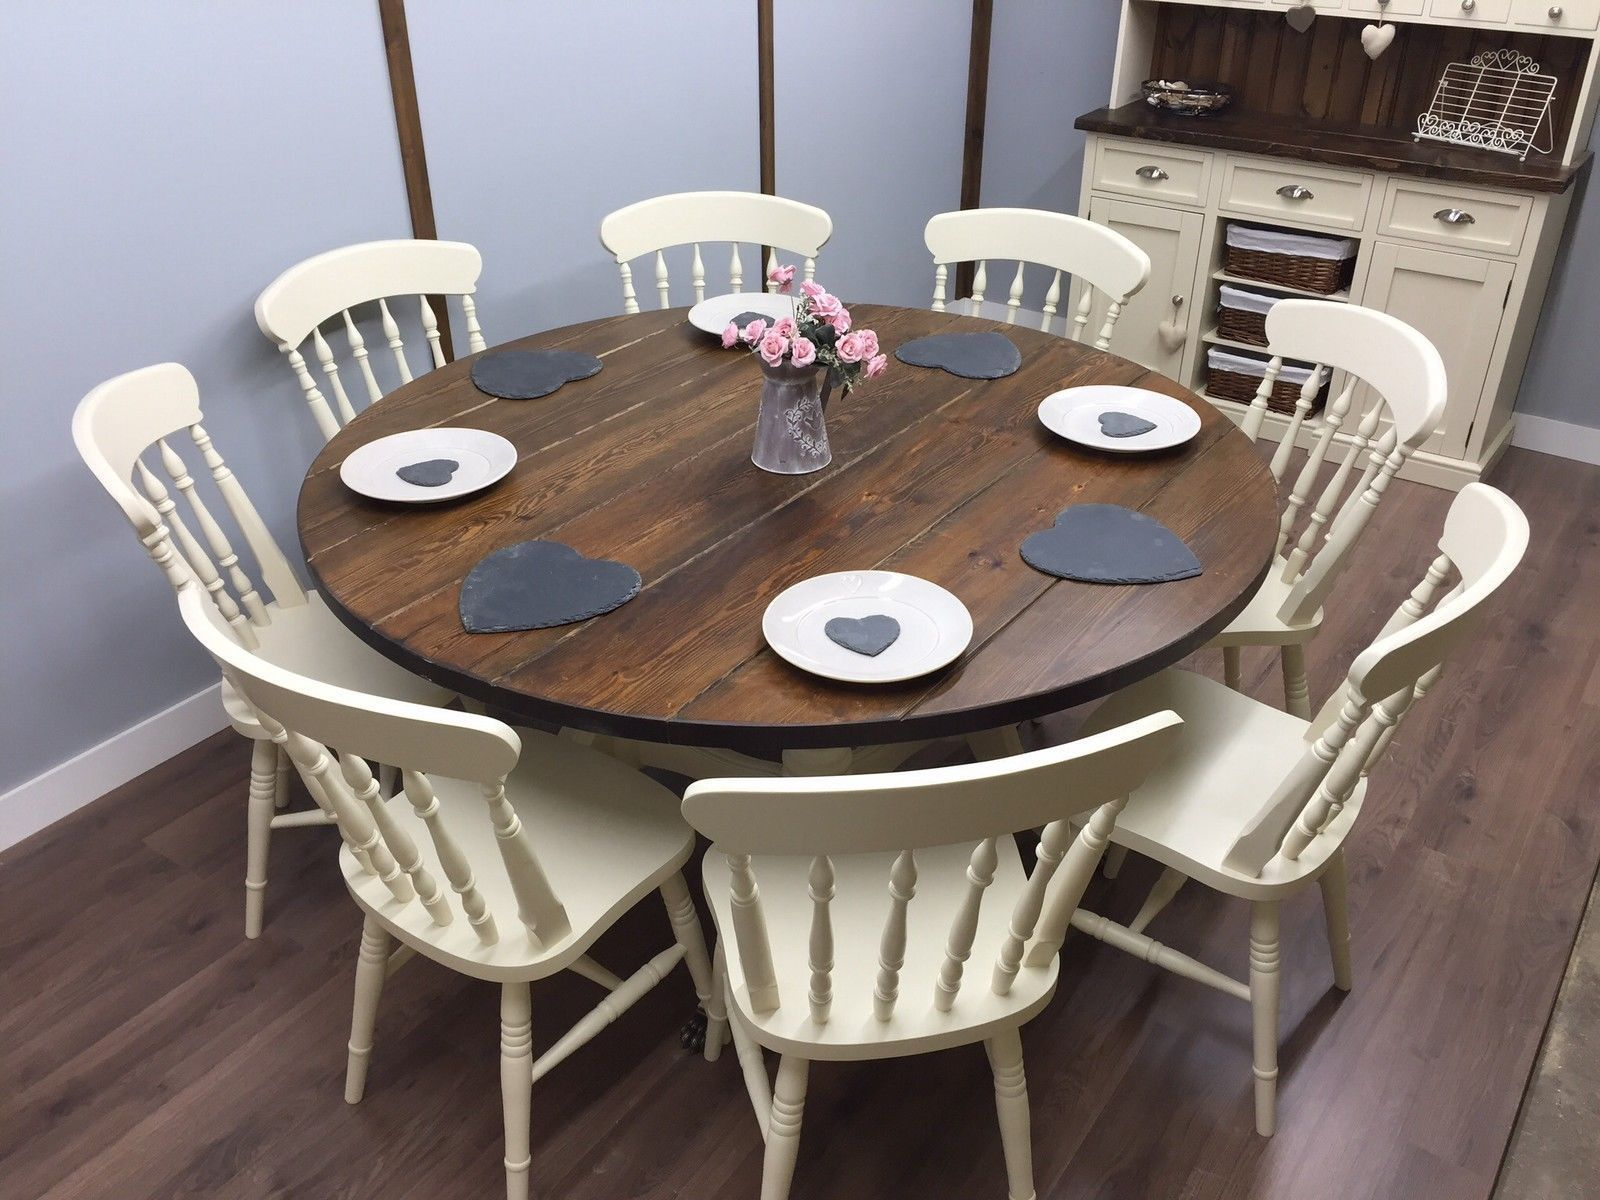 Flourish Your Home Appearance With Modern Round Dining Room Tables